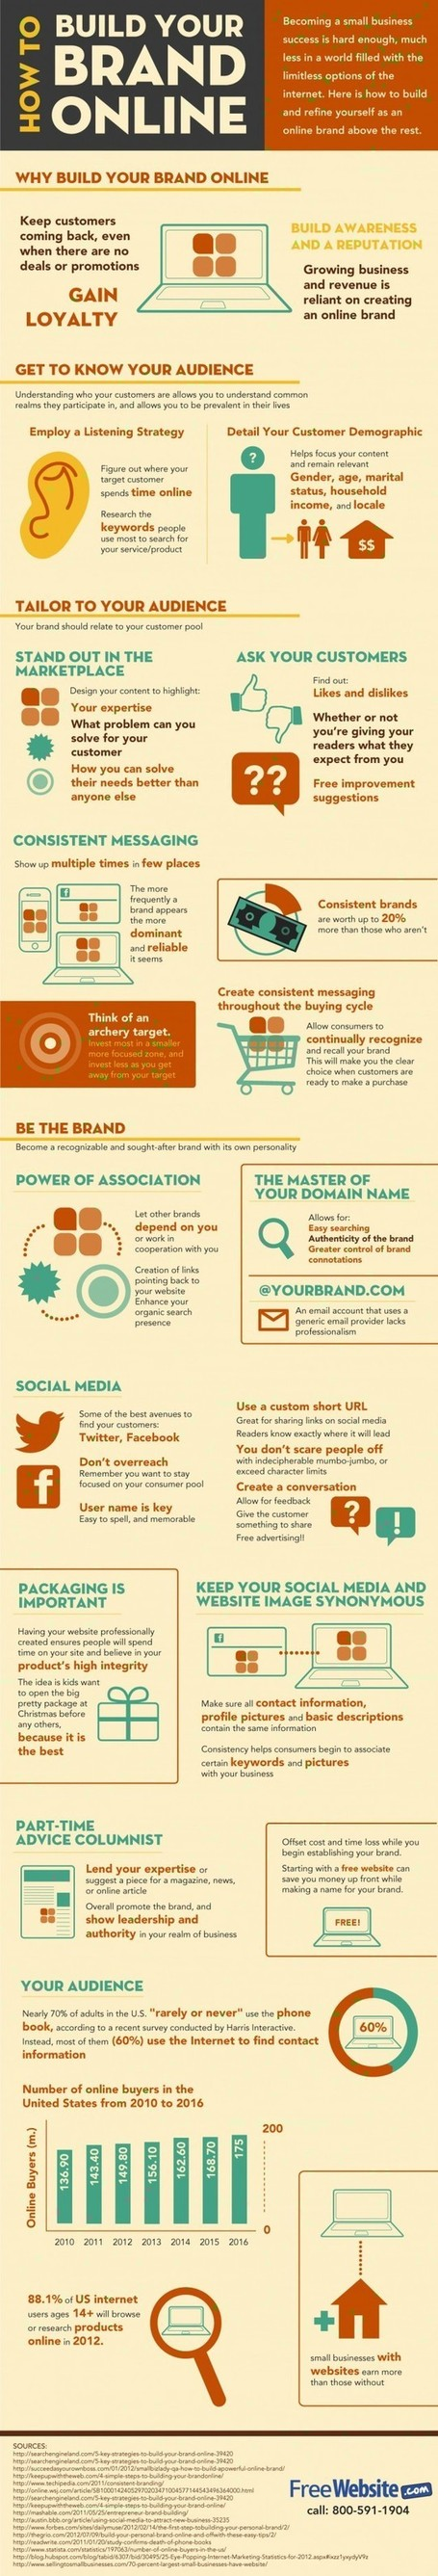 Why You Need to Build Your Brand Online [infographic] | Gabriel Catalano human being | #INperfeccion® a way to find new insight & perspectives | Scoop.it